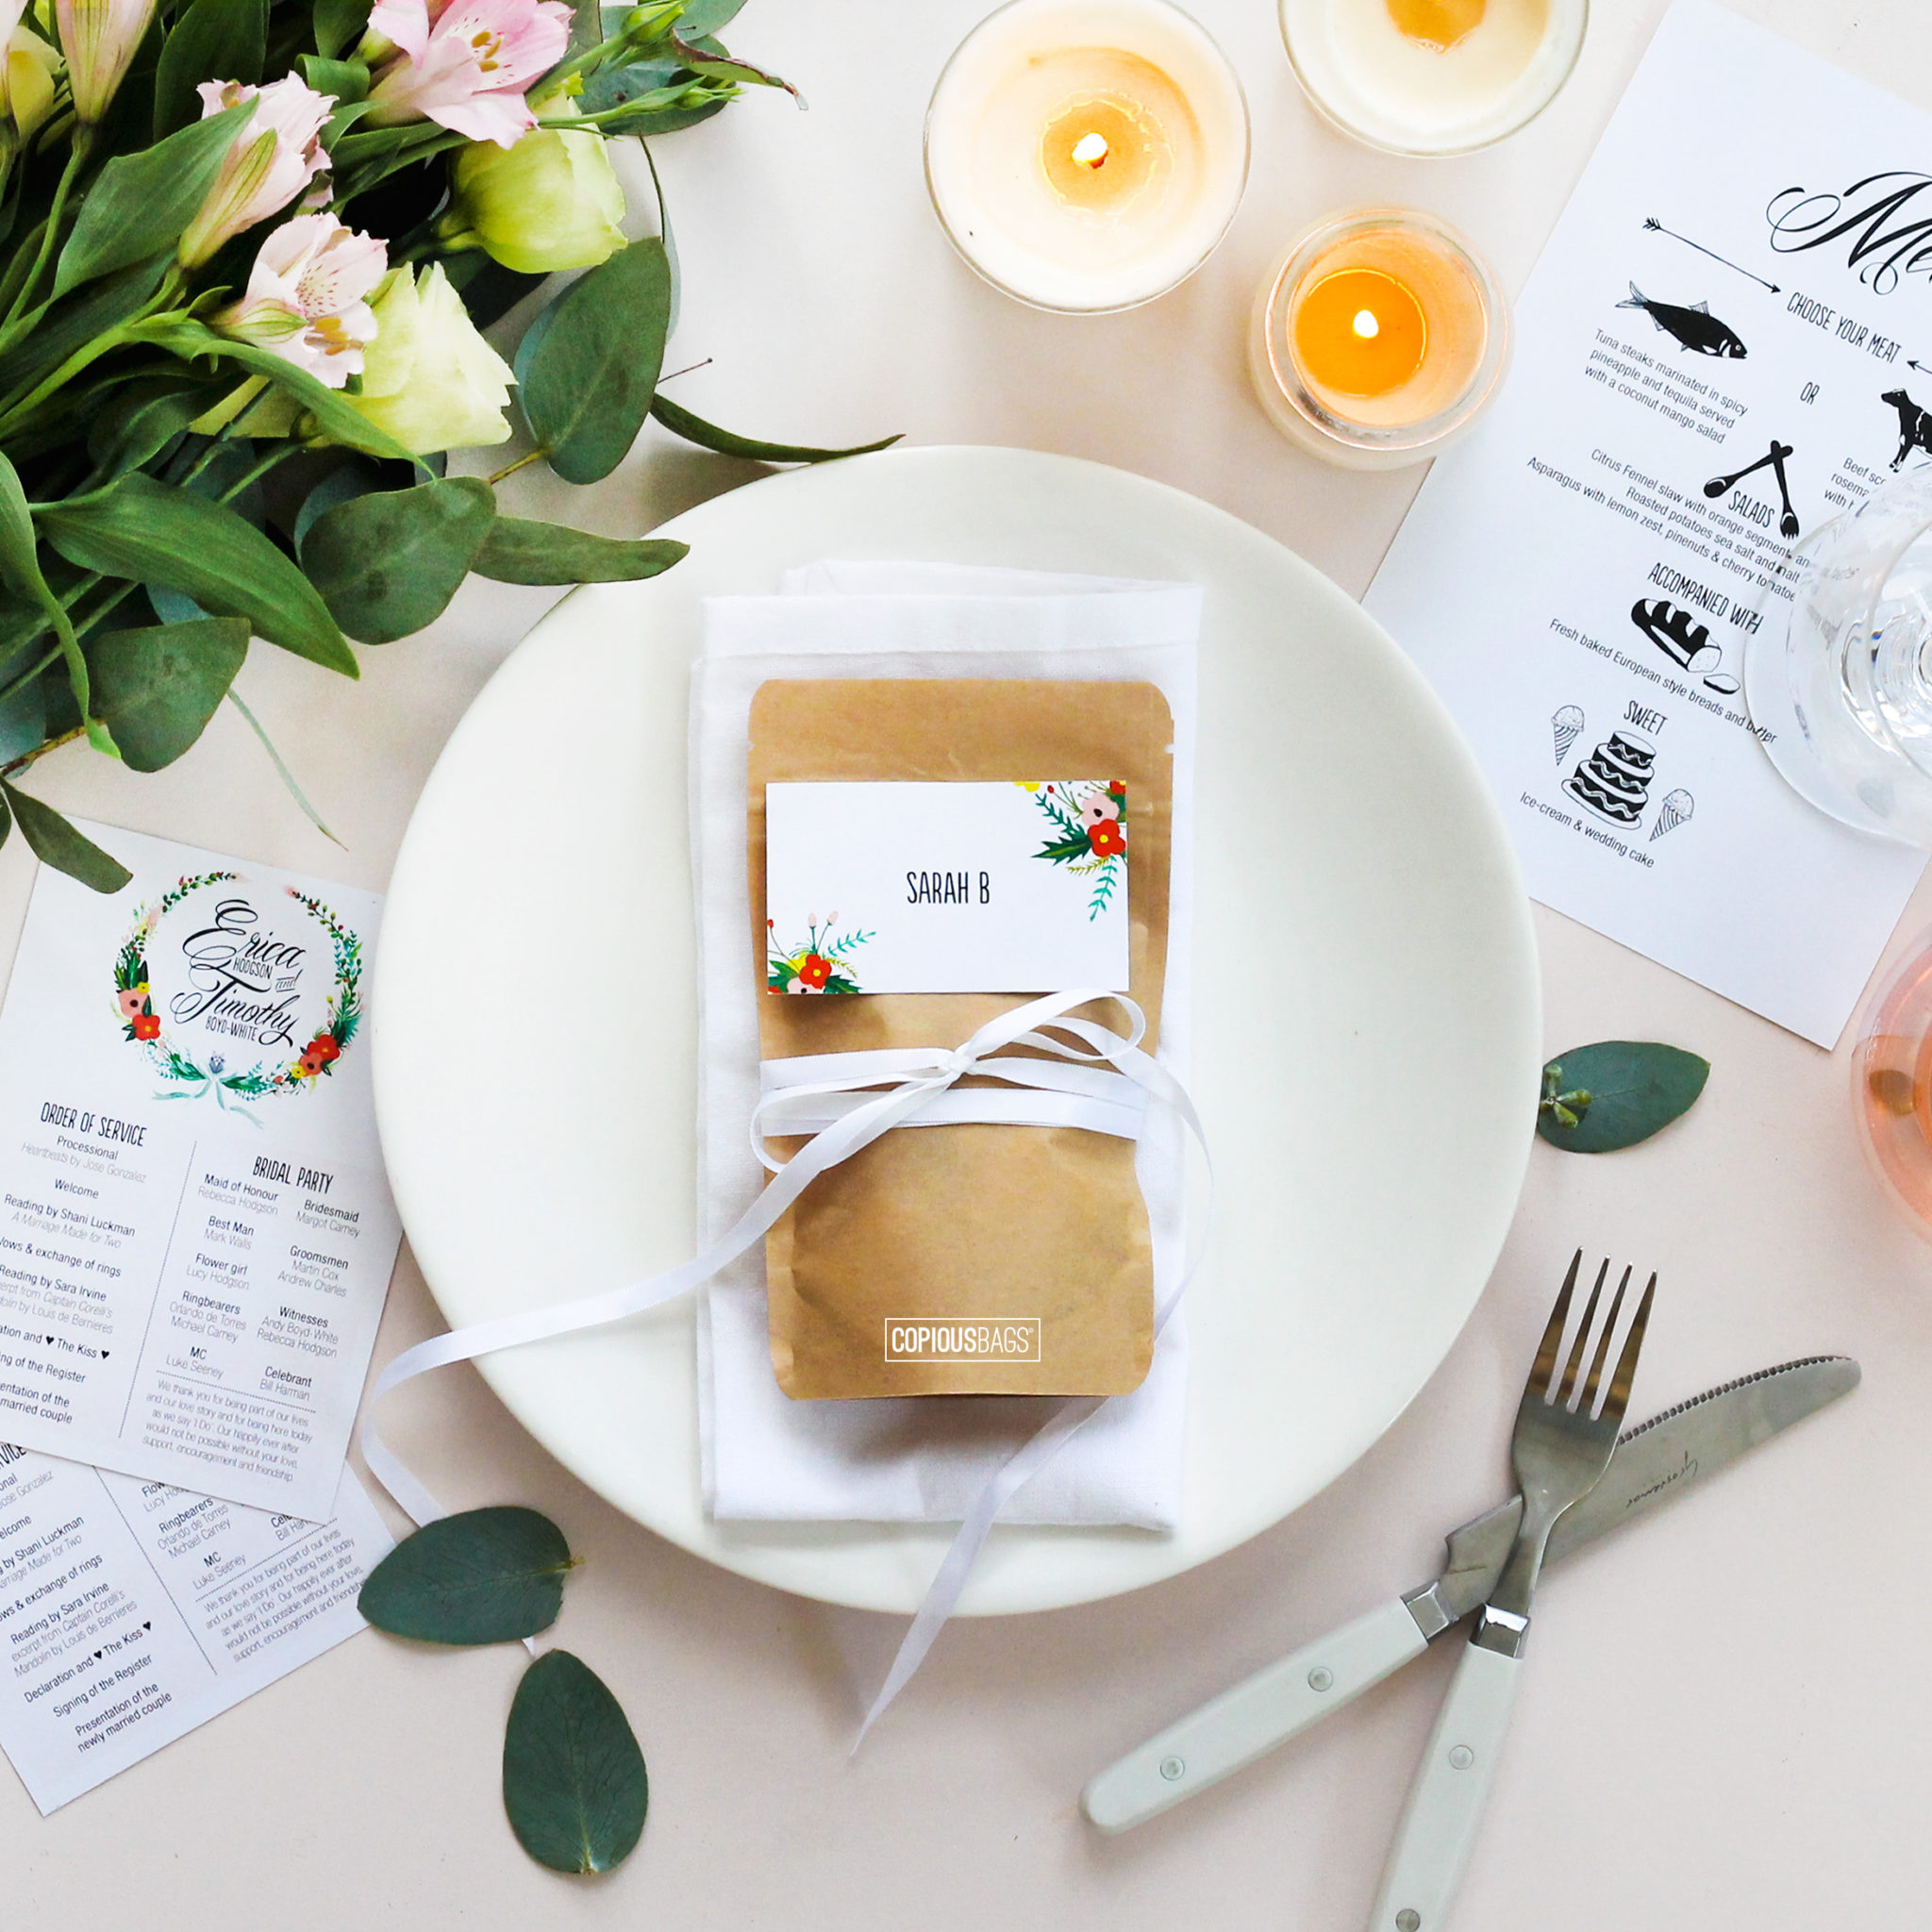 Special Event and Wedding Favor Packaging - Copious Bags®